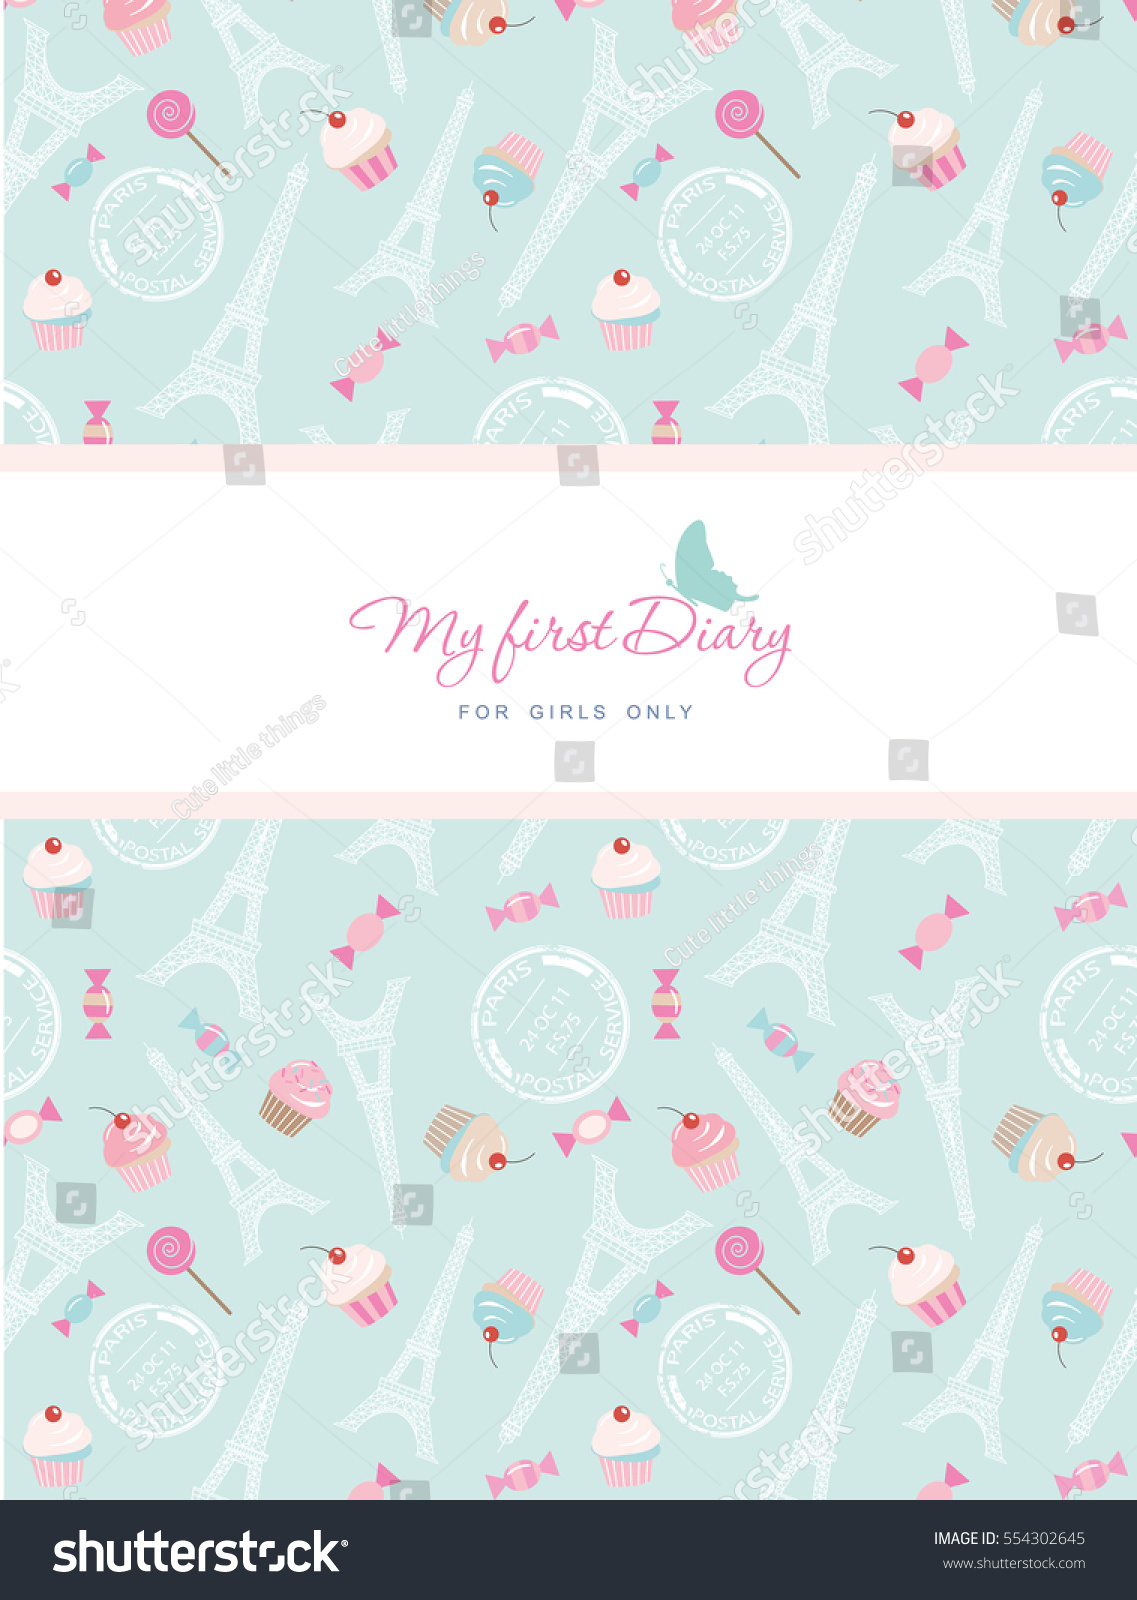 Cute Template For Notebook Cover Girls My First Diary Included Seamless Pattern With Eiffel Tower Cupcakes And Sweets On Pastel Blue